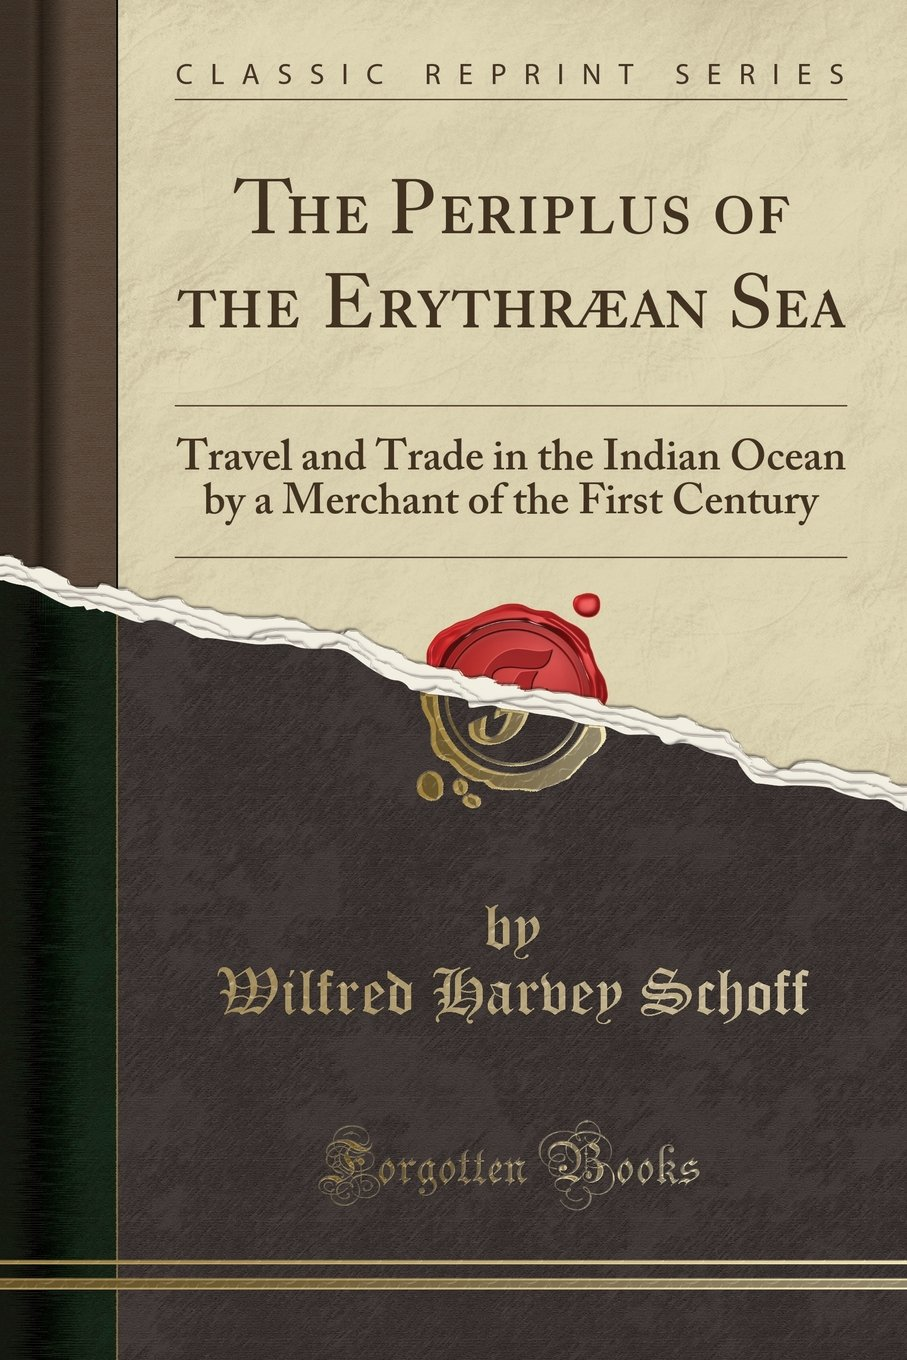 Download The Periplus of the Erythræan Sea: Travel and Trade in the Indian Ocean by a Merchant of the First Century (Classic Reprint) pdf